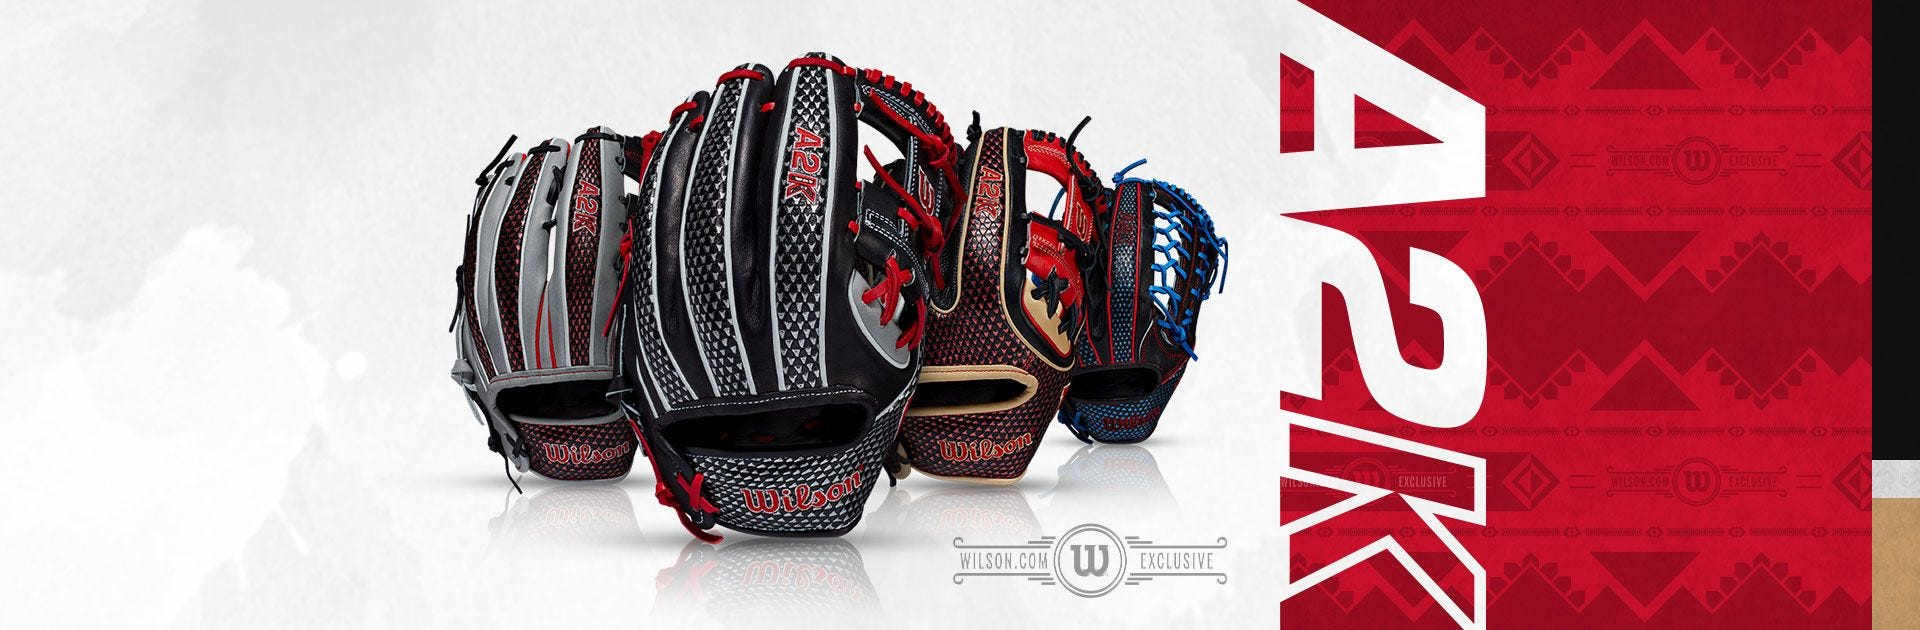 Limited Edition Wilson A2K Baseball Gloves